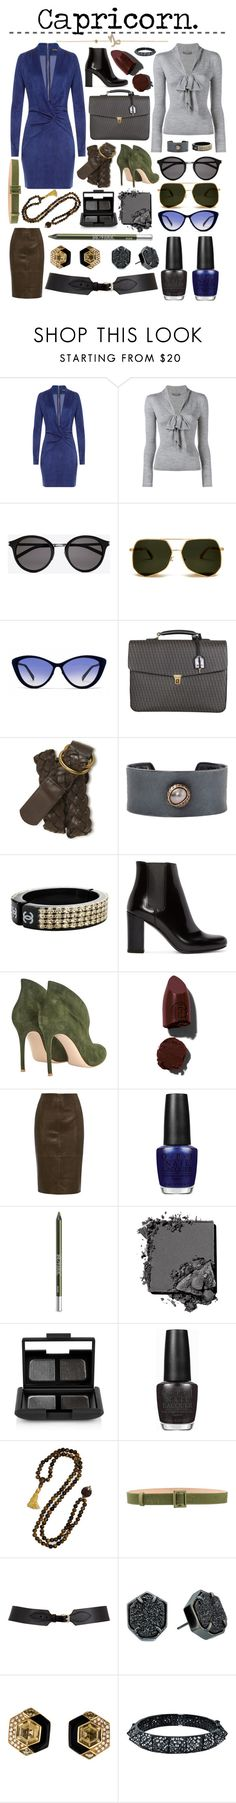 """Capricorn"" by effulgentsoul ❤ liked on Polyvore featuring Jitrois, Alexander McQueen, Yves Saint Laurent, Italia Independent, Aéropostale, Todd Reed, Chanel, Gianvito Rossi, Lipstick Queen and OPI"